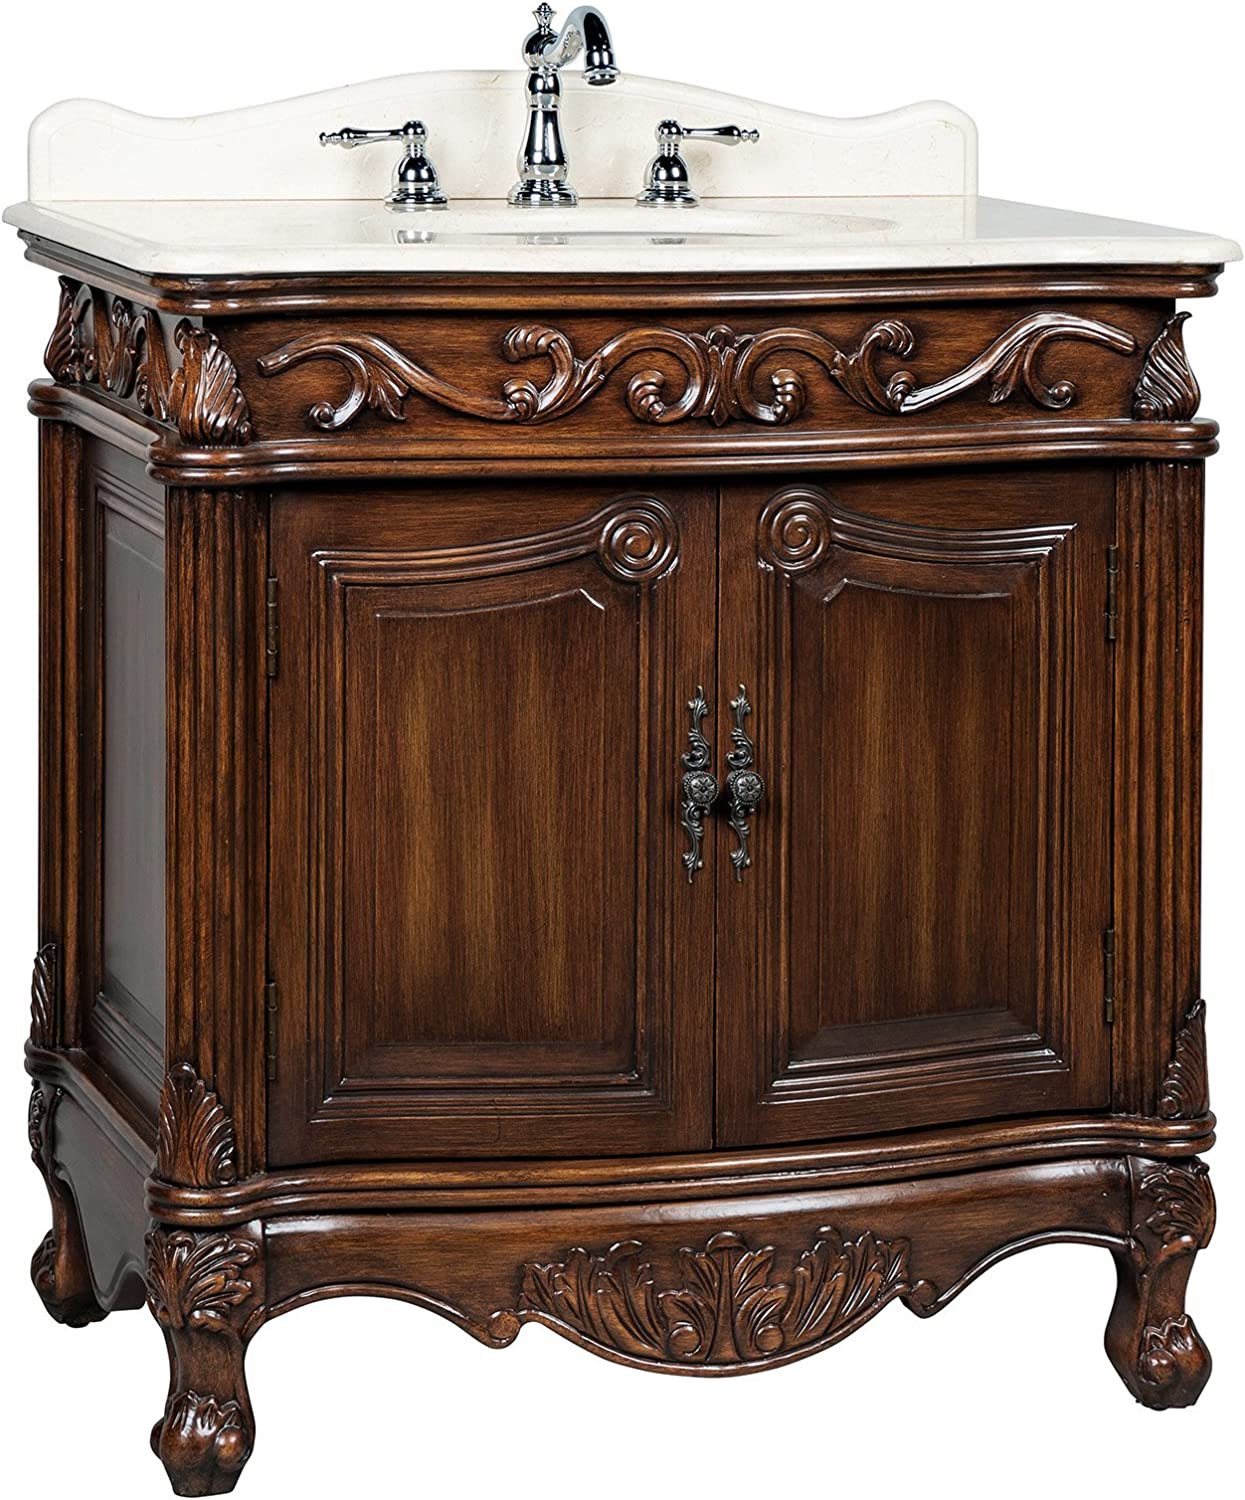 31 Traditional Style Fiesta Bathroom Sink VanityCabinet – Model CF-2873M